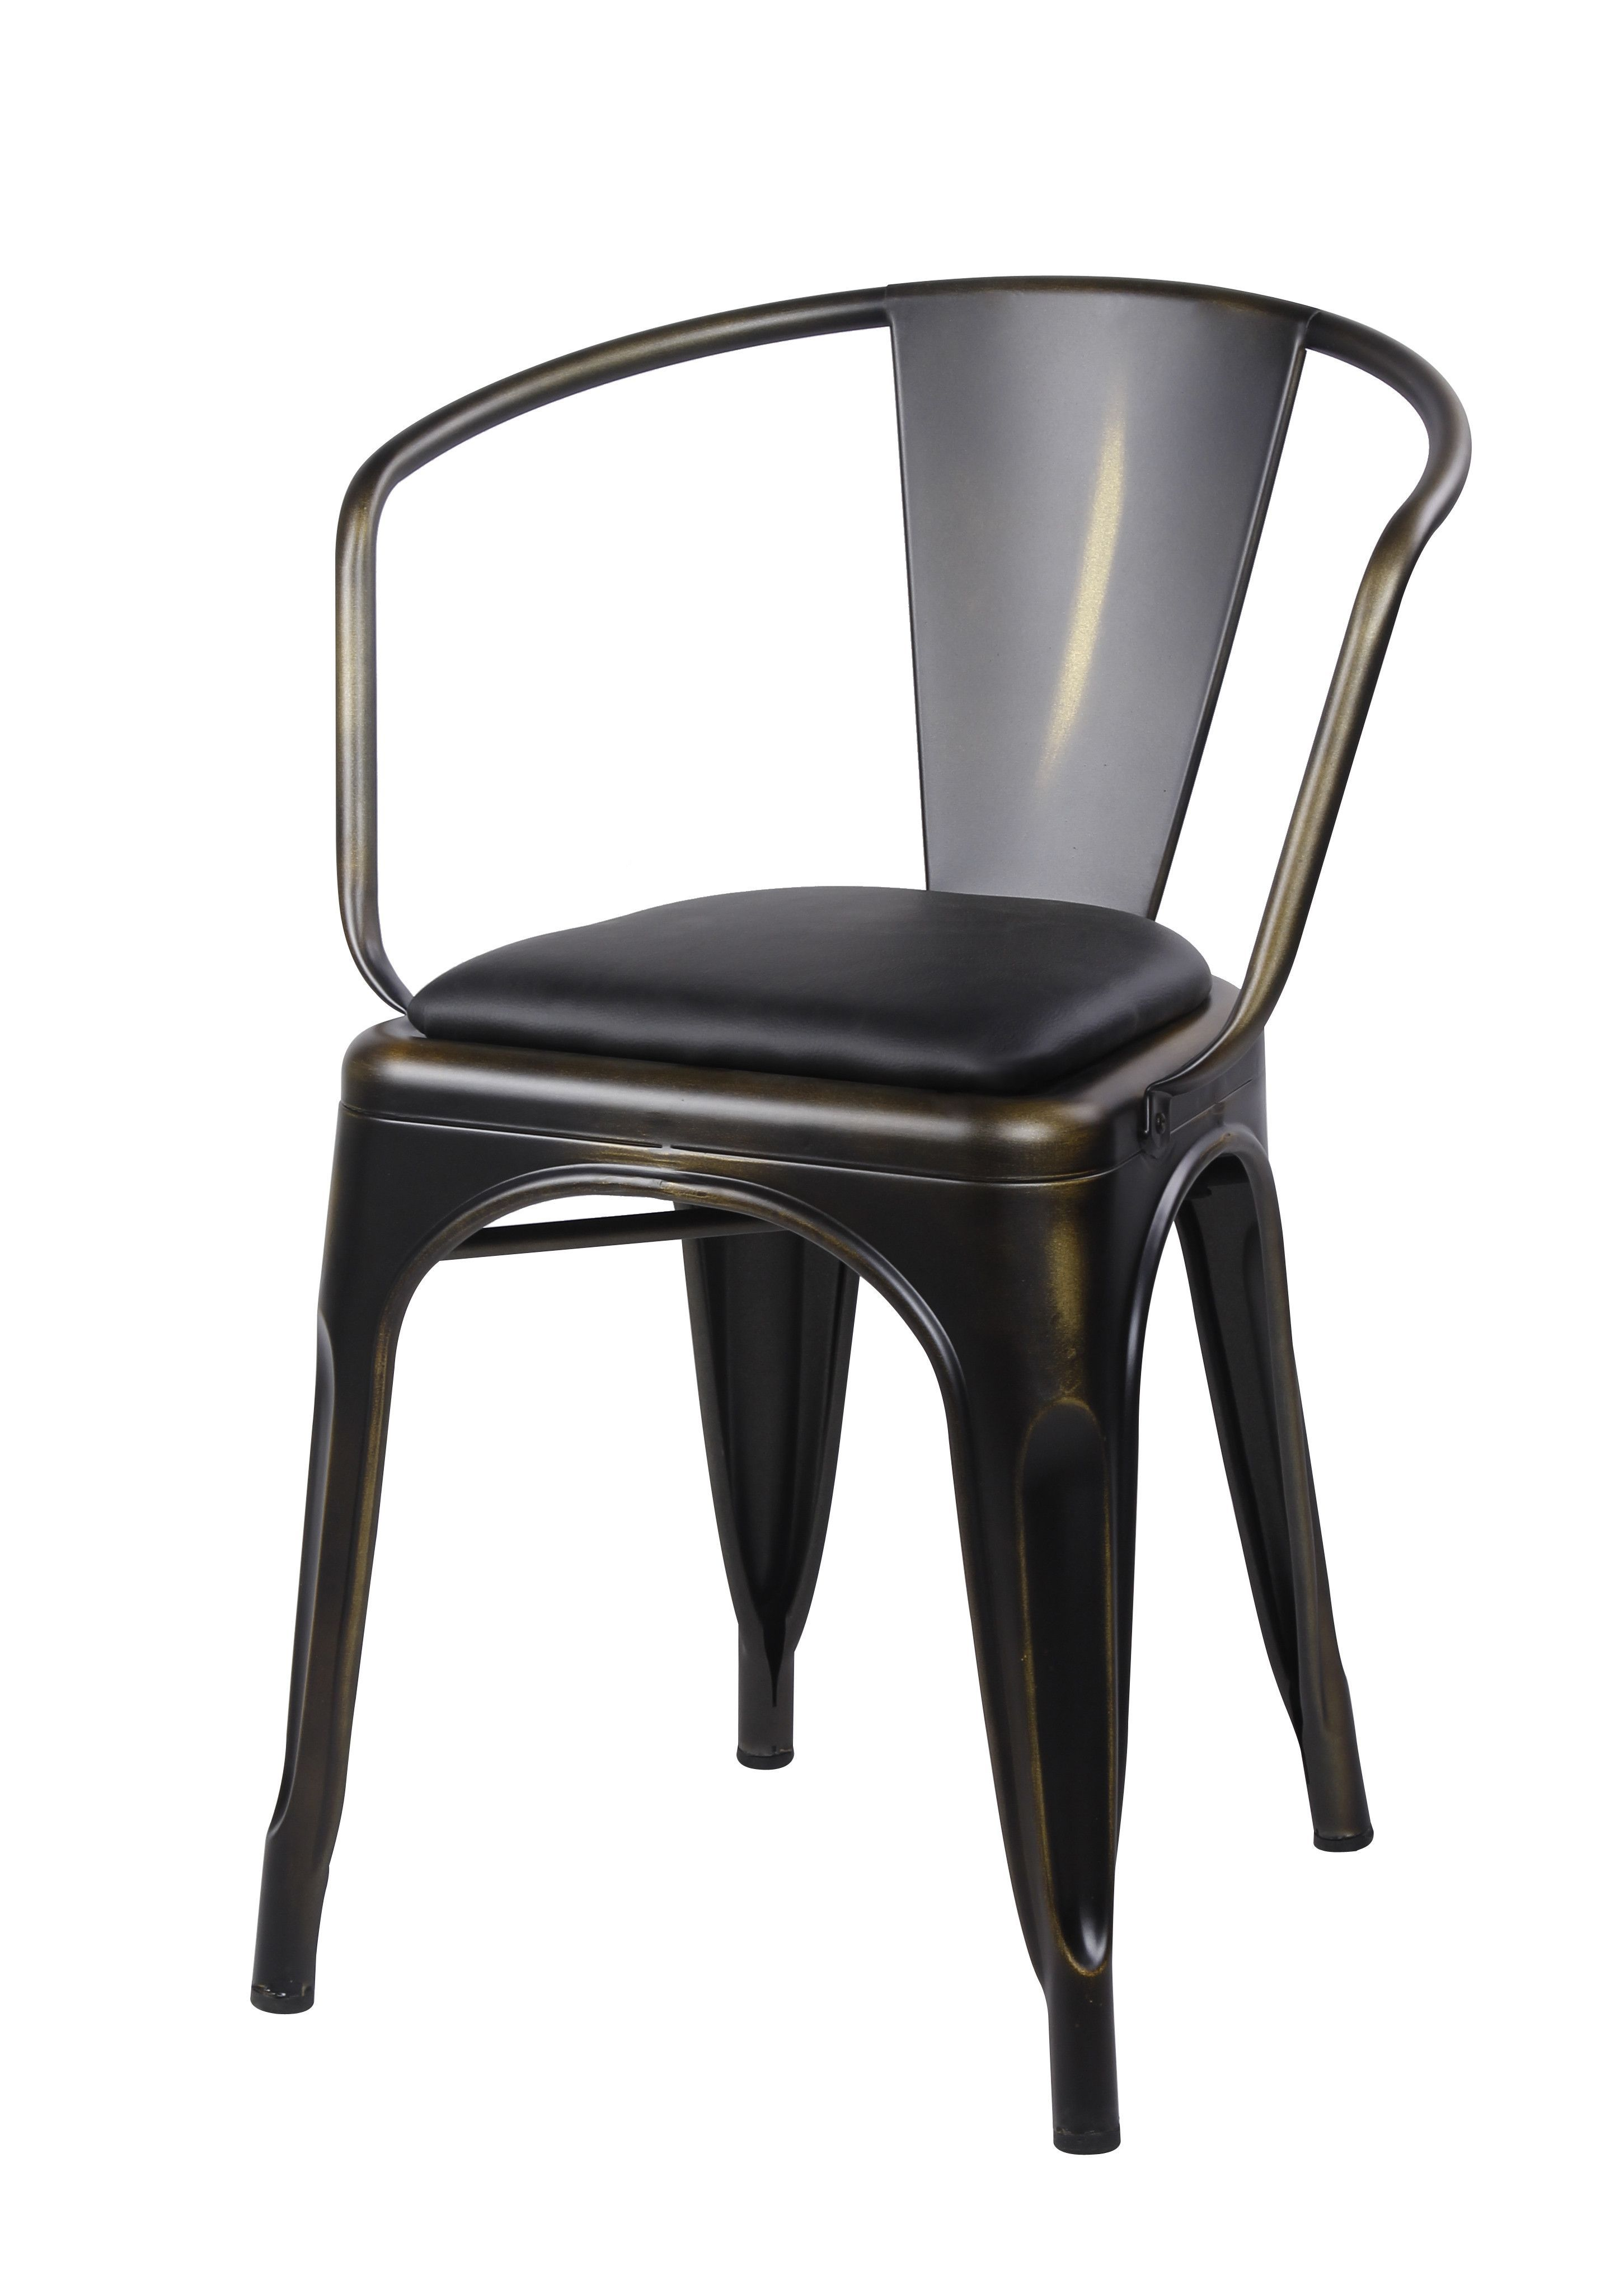 metal dining chairs with back leather cushion seat pinterest